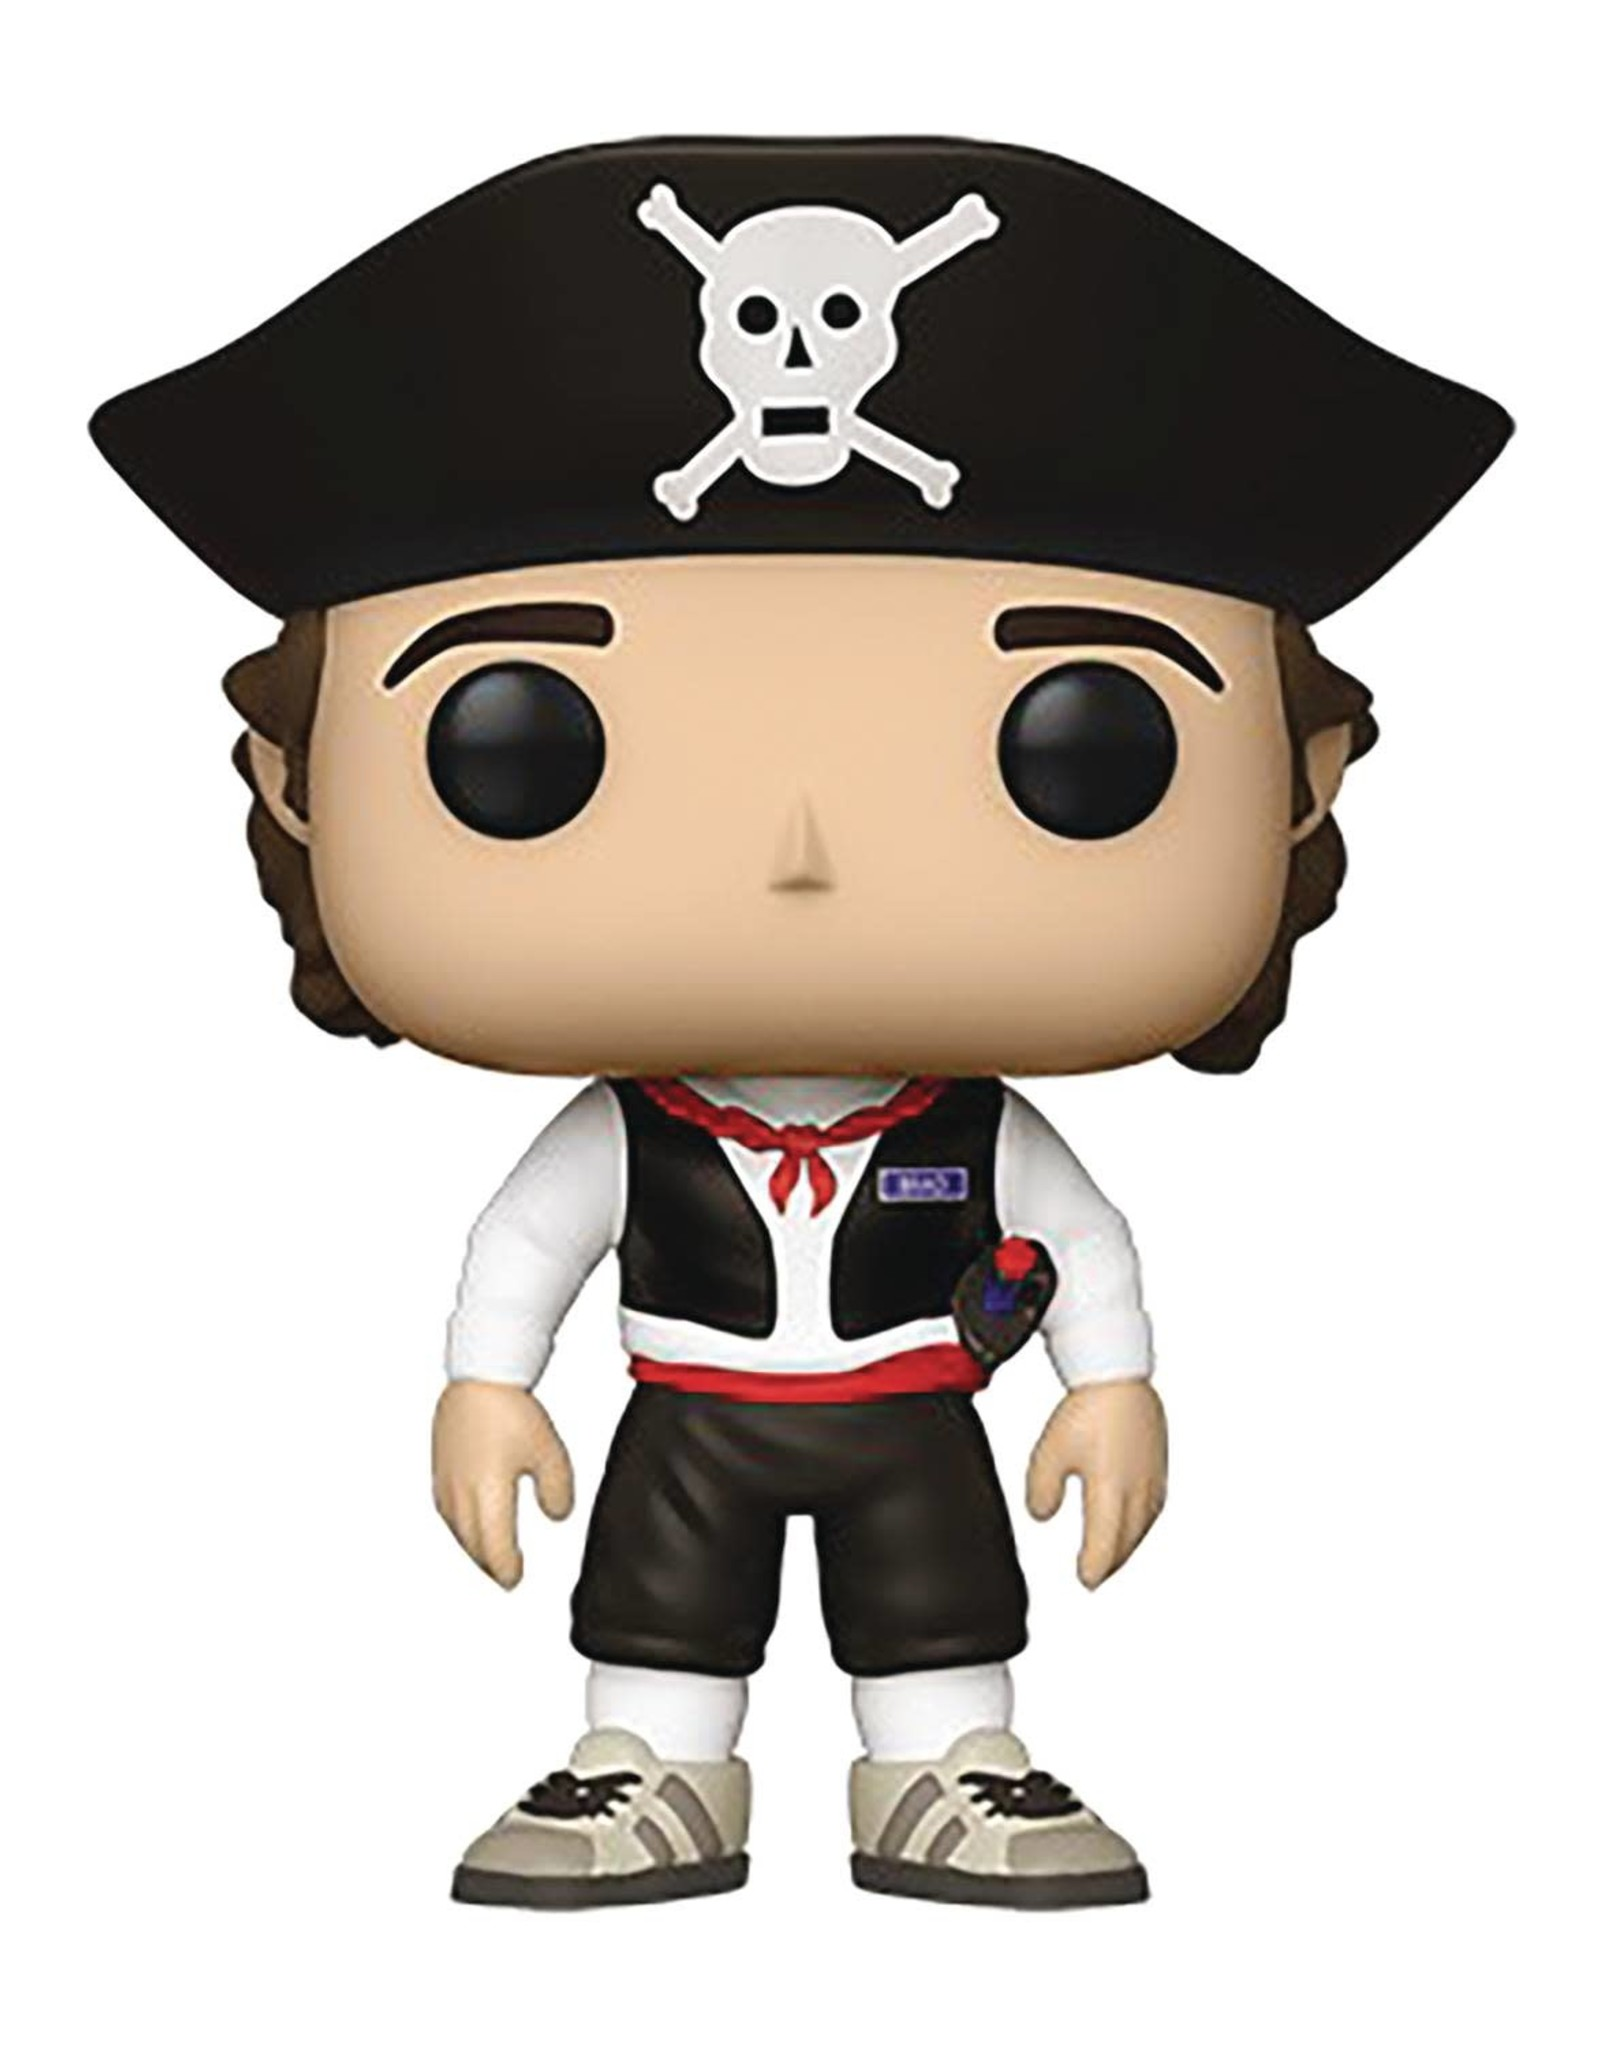 Funko POP MOVIES FAST TIMES BRAD AS PIRATE VIN FIG (C: 1-1-2)